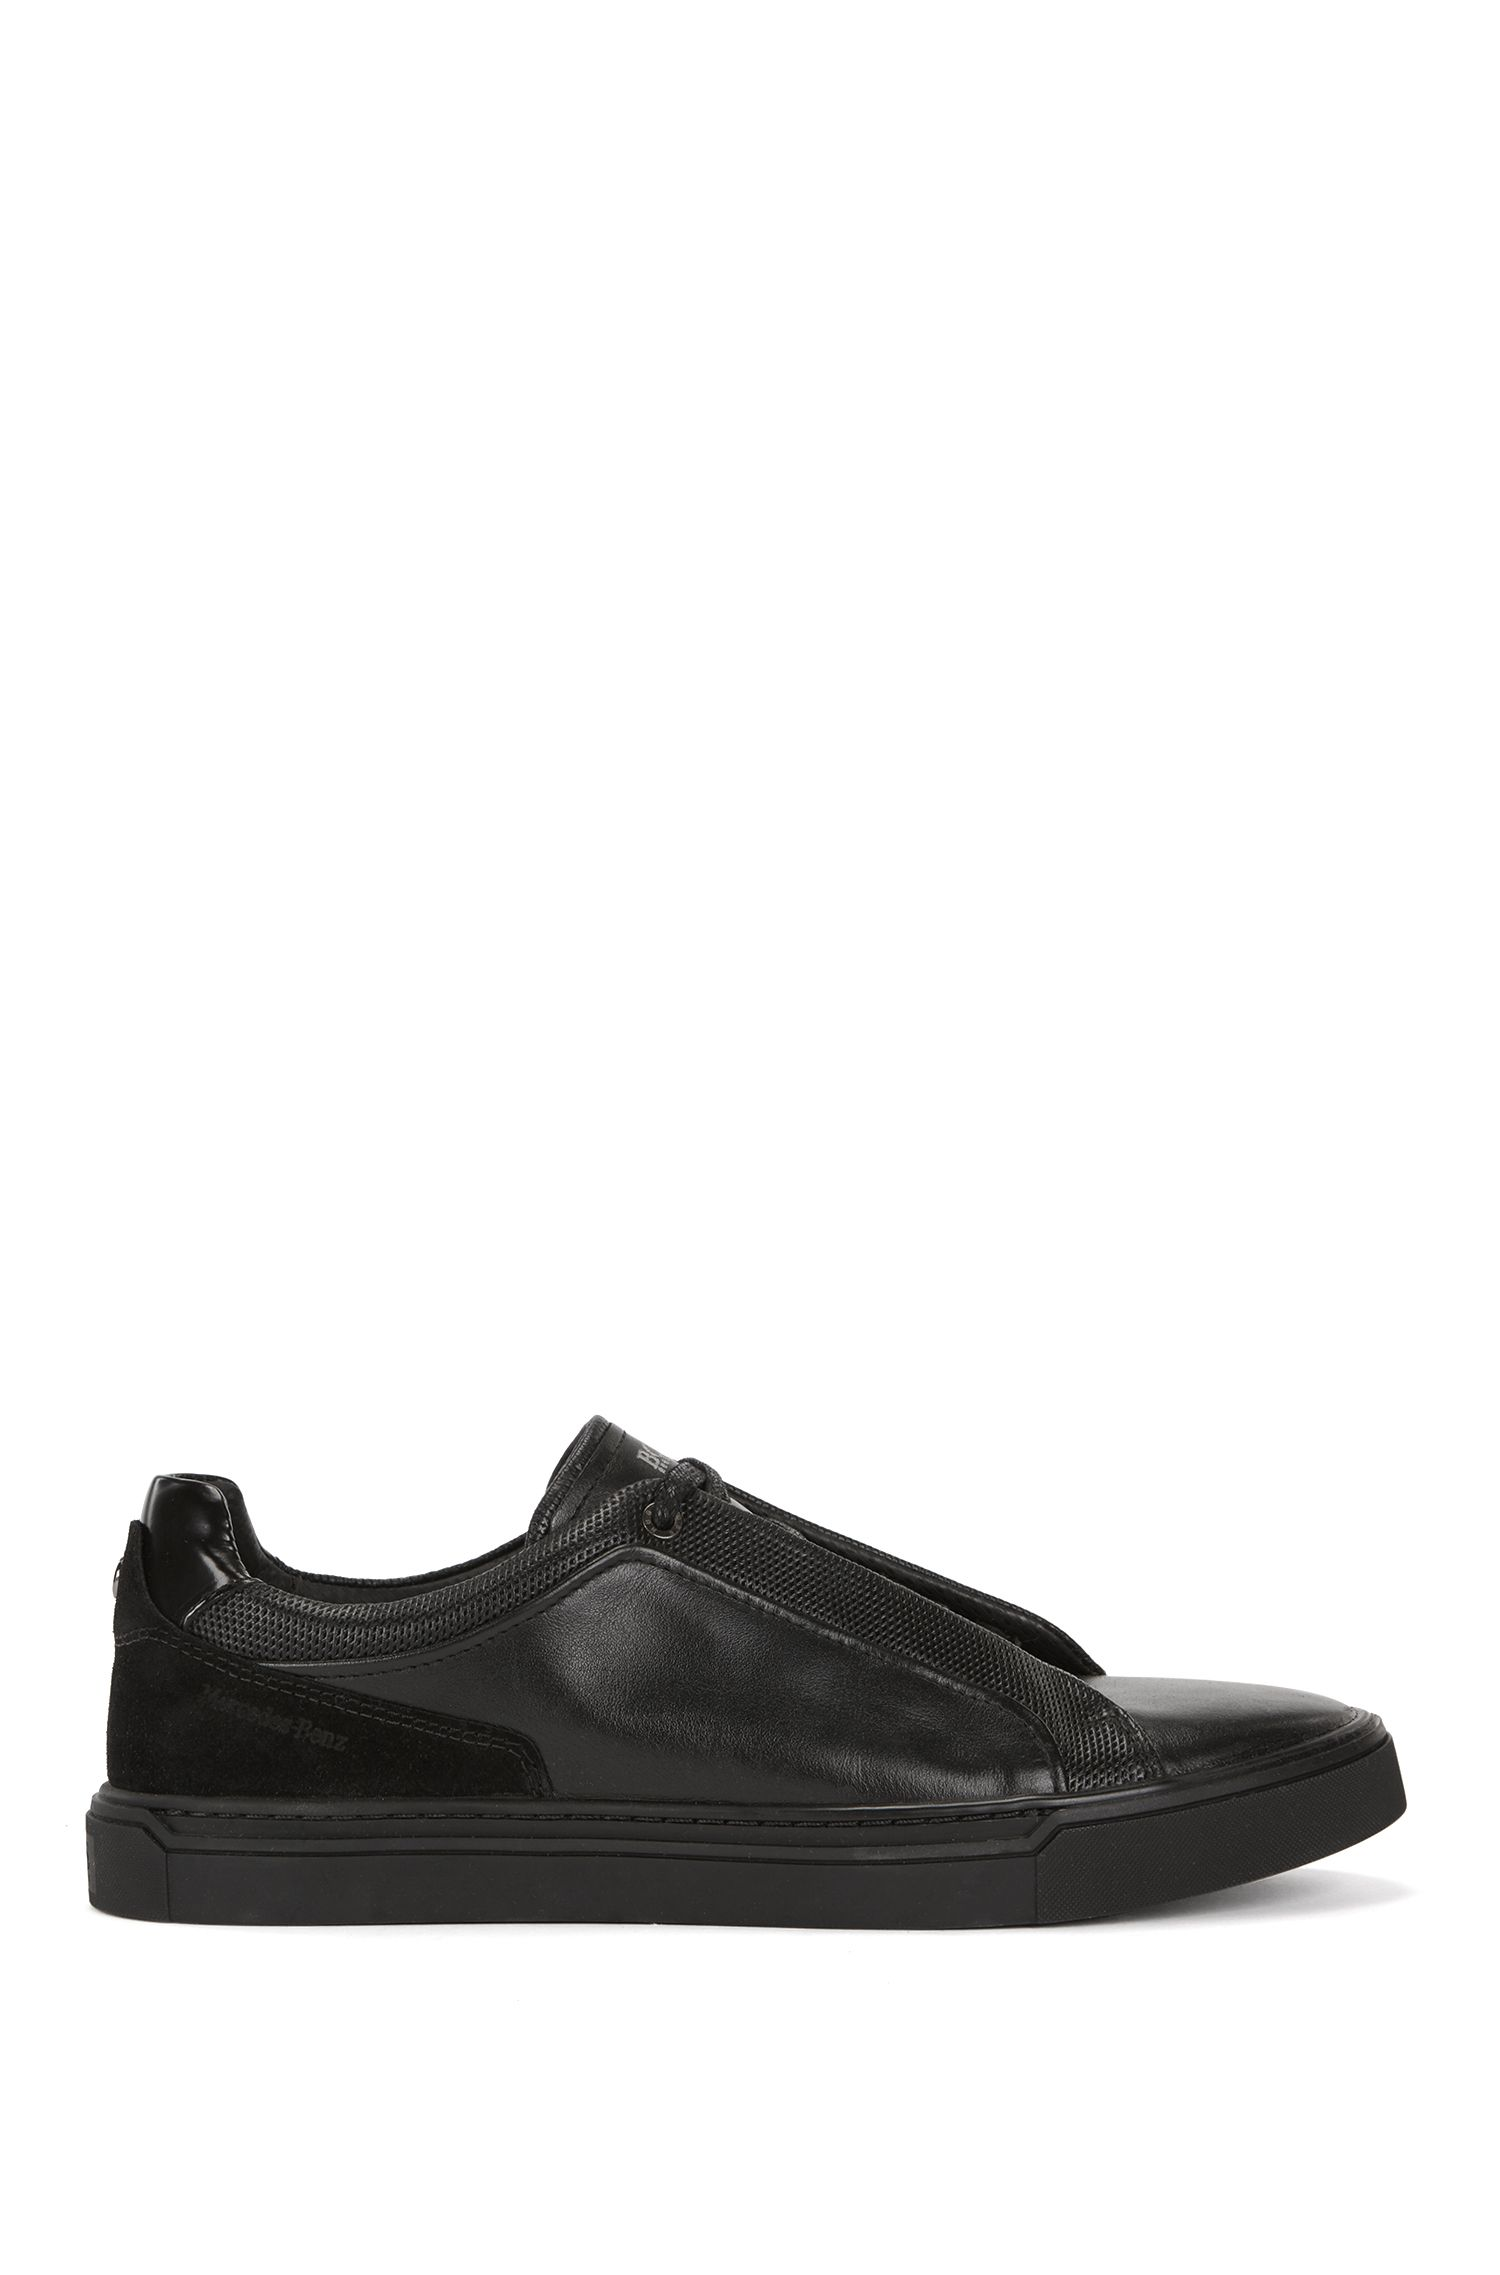 Mercedes-Benz sneakers in leather and suede